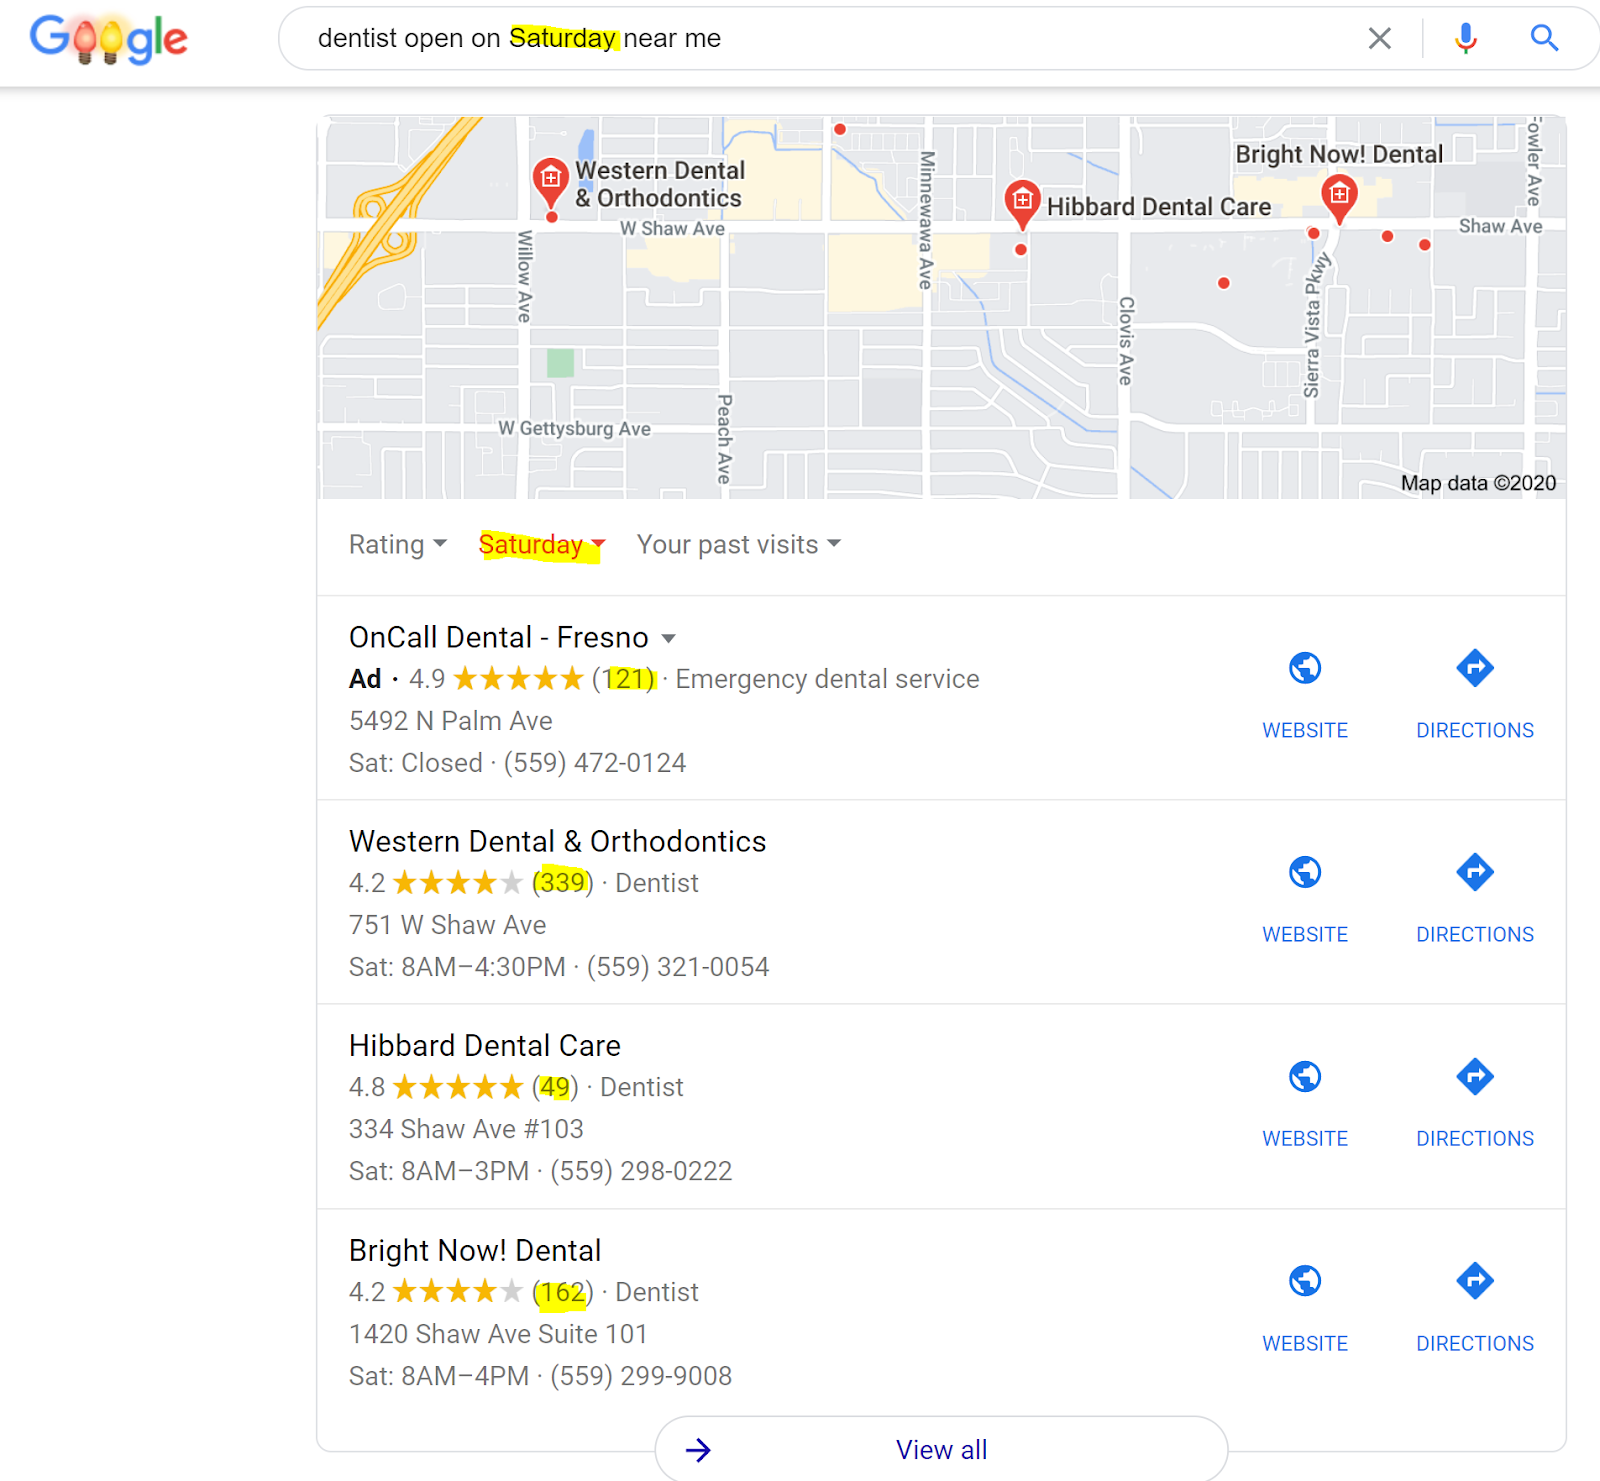 """The image shows the results of a Google Search, """"Dentist open on Saturday near me."""" A range of results are shown for Fresno, California."""